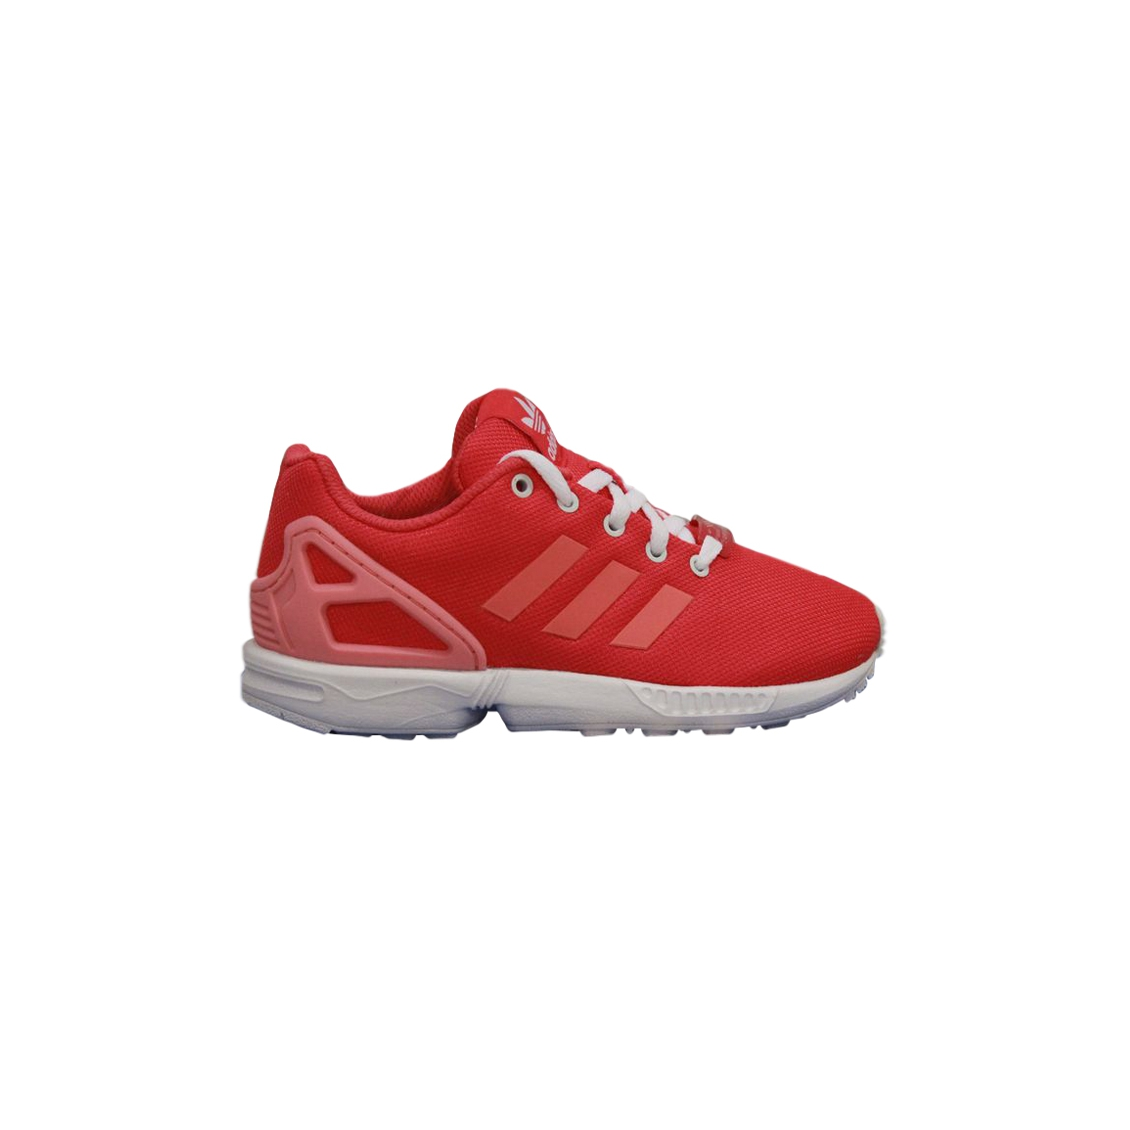 adidas originals zx flux k enfant rose b25639 ebay. Black Bedroom Furniture Sets. Home Design Ideas